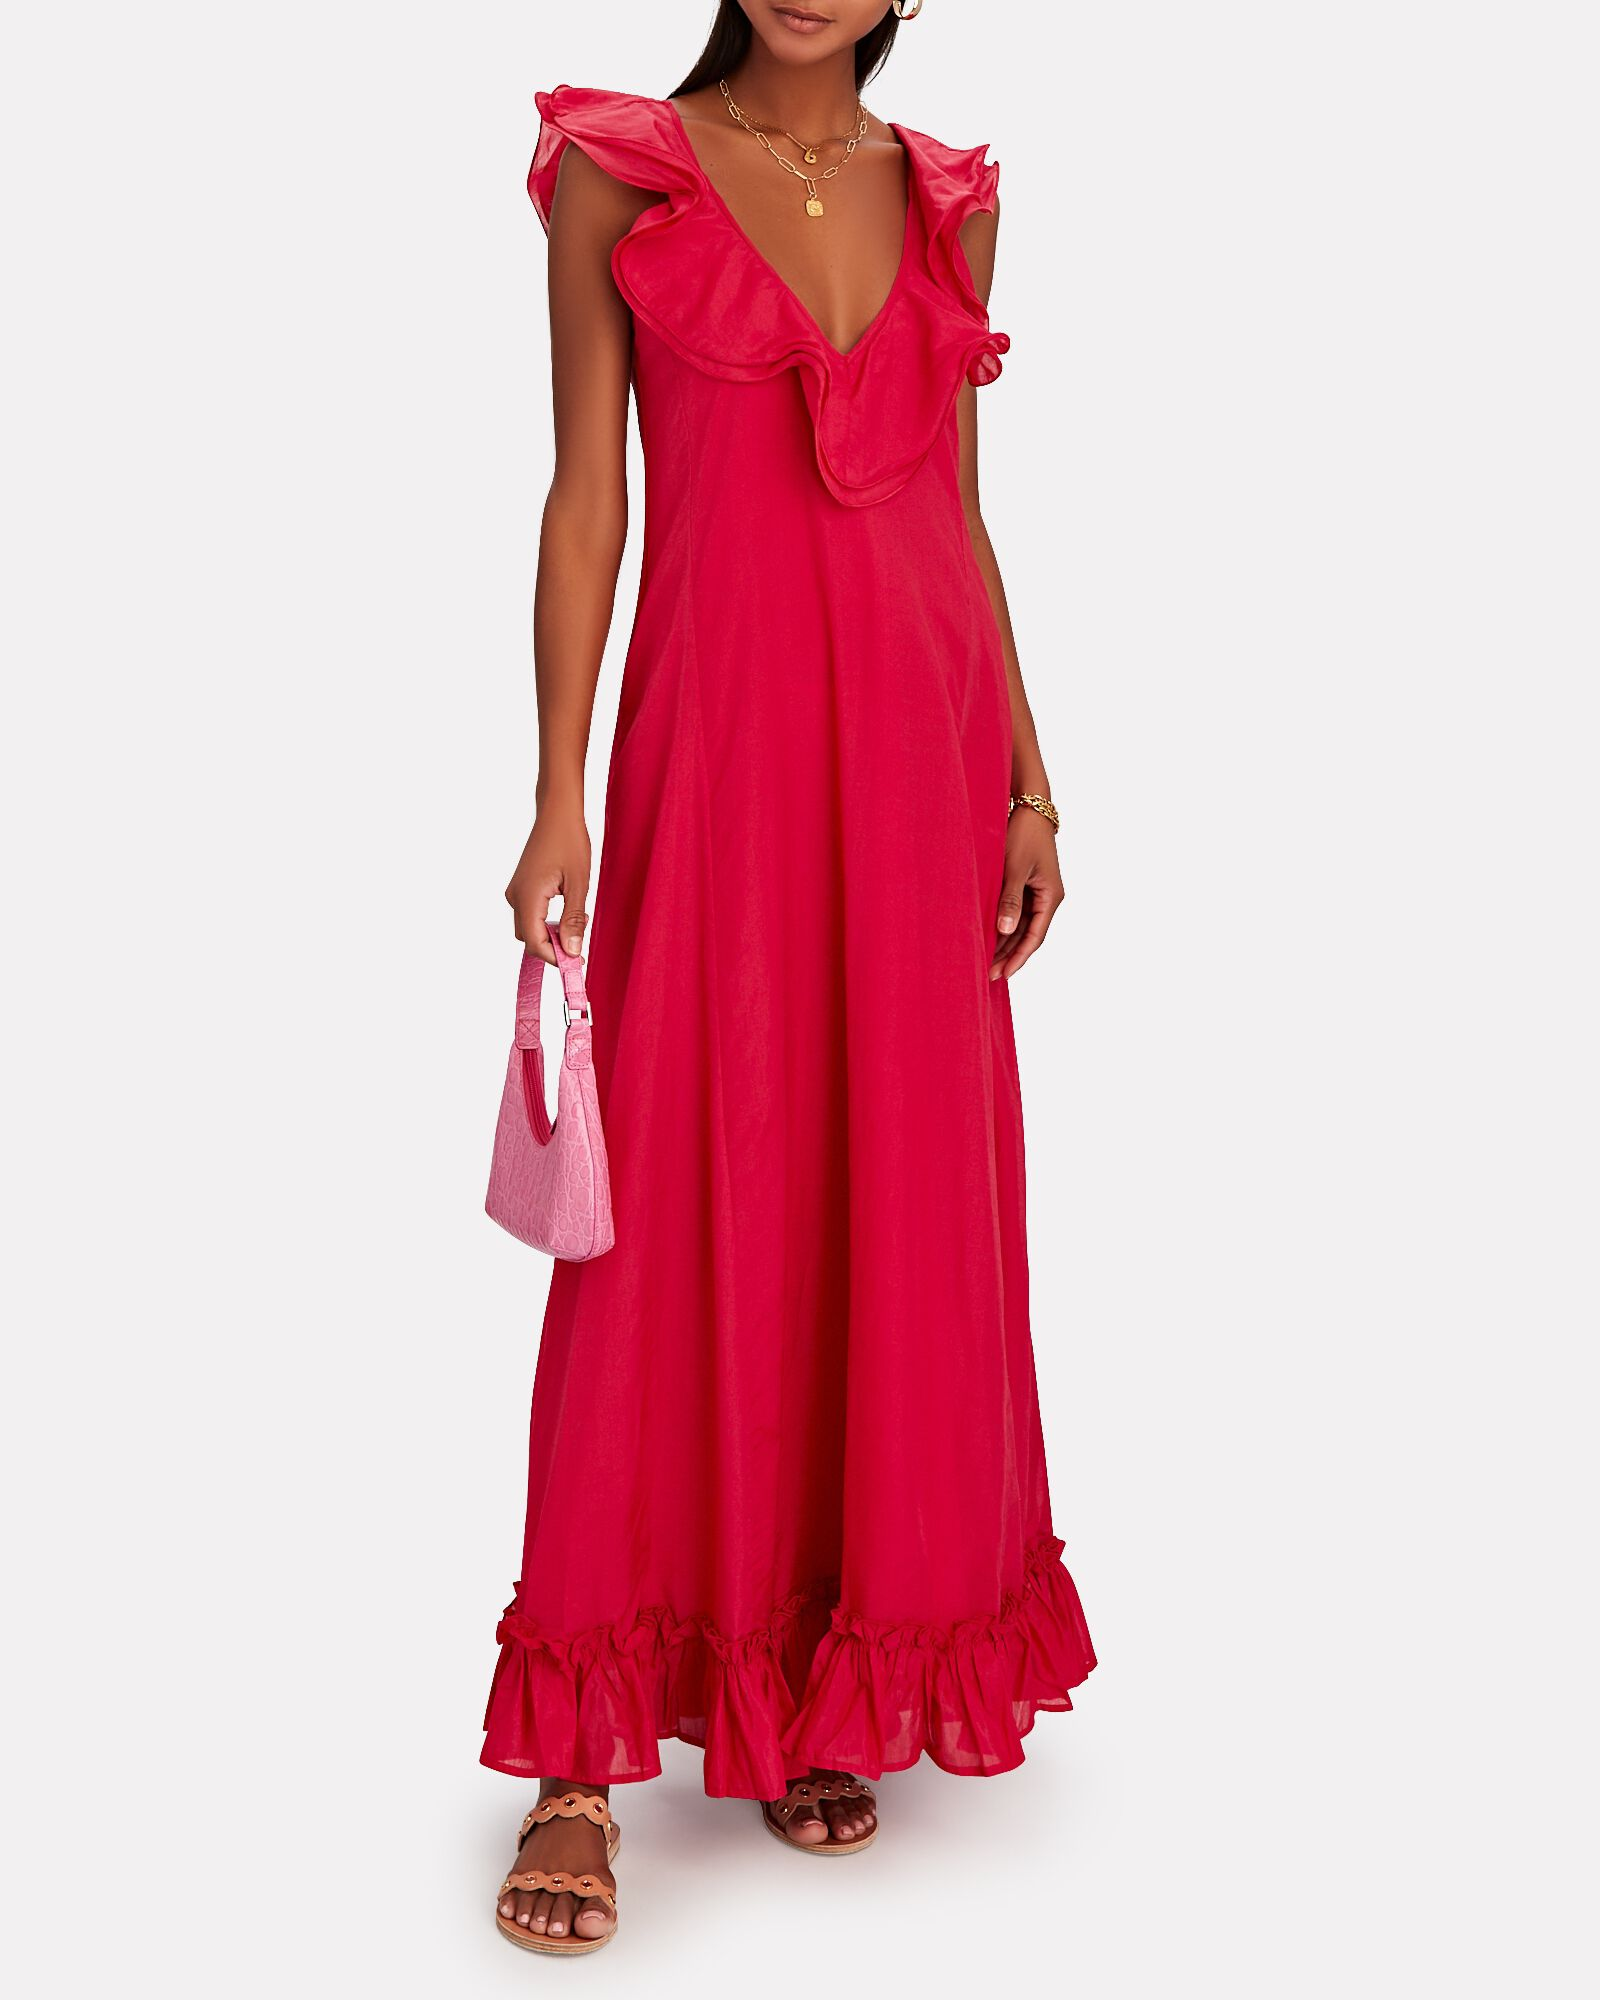 Ambra Ruffled Cotton-Silk Maxi Dress, PINK-DRK, hi-res